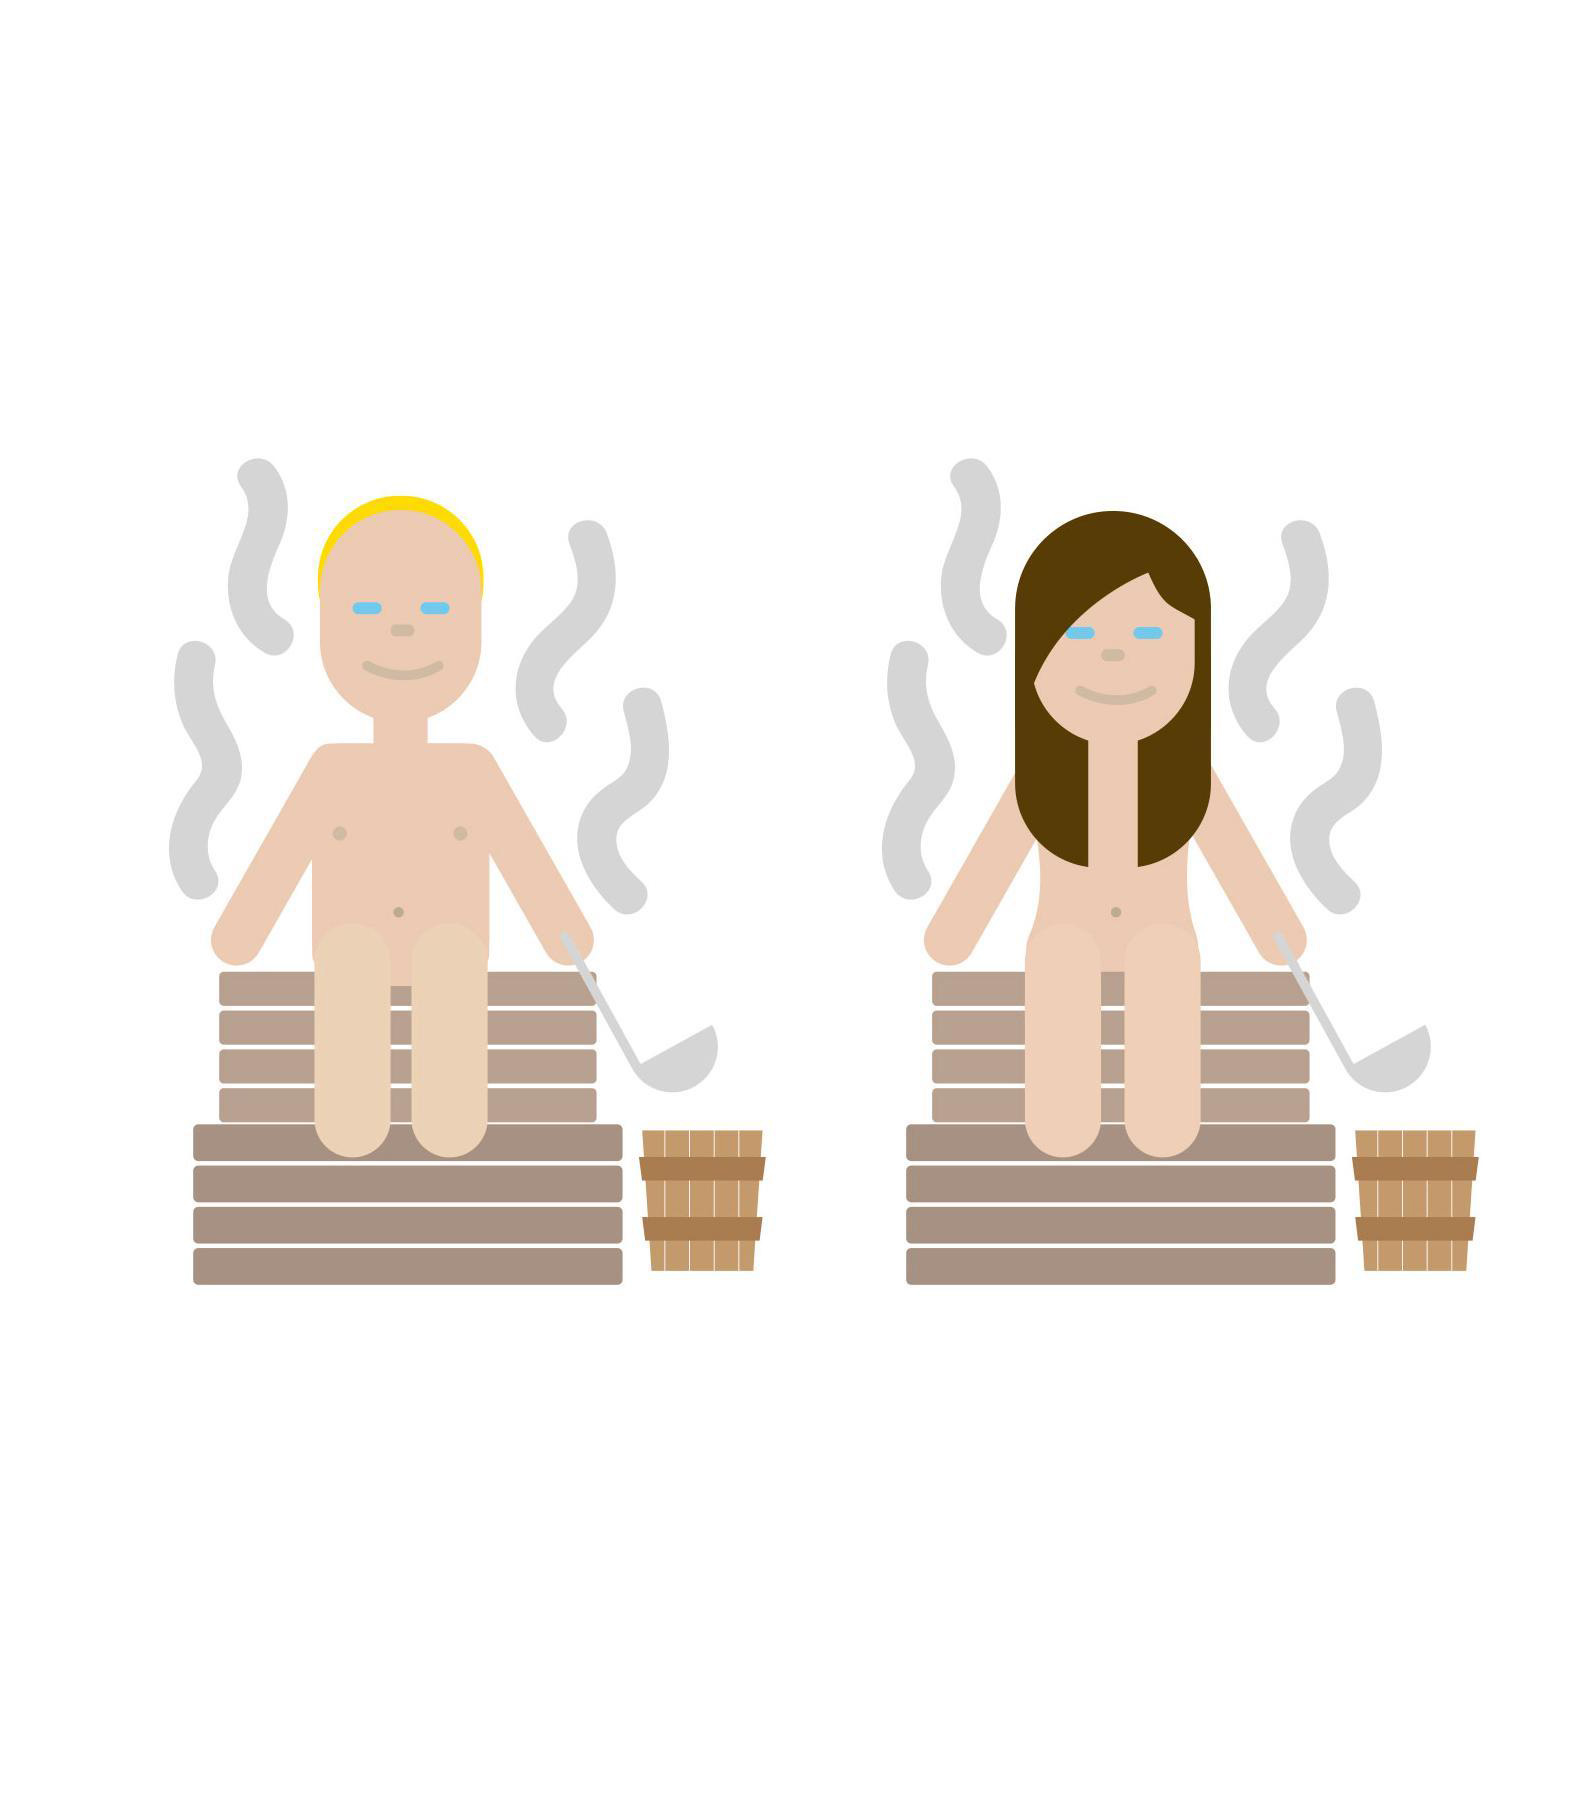 Finland is launching its very own Emoji